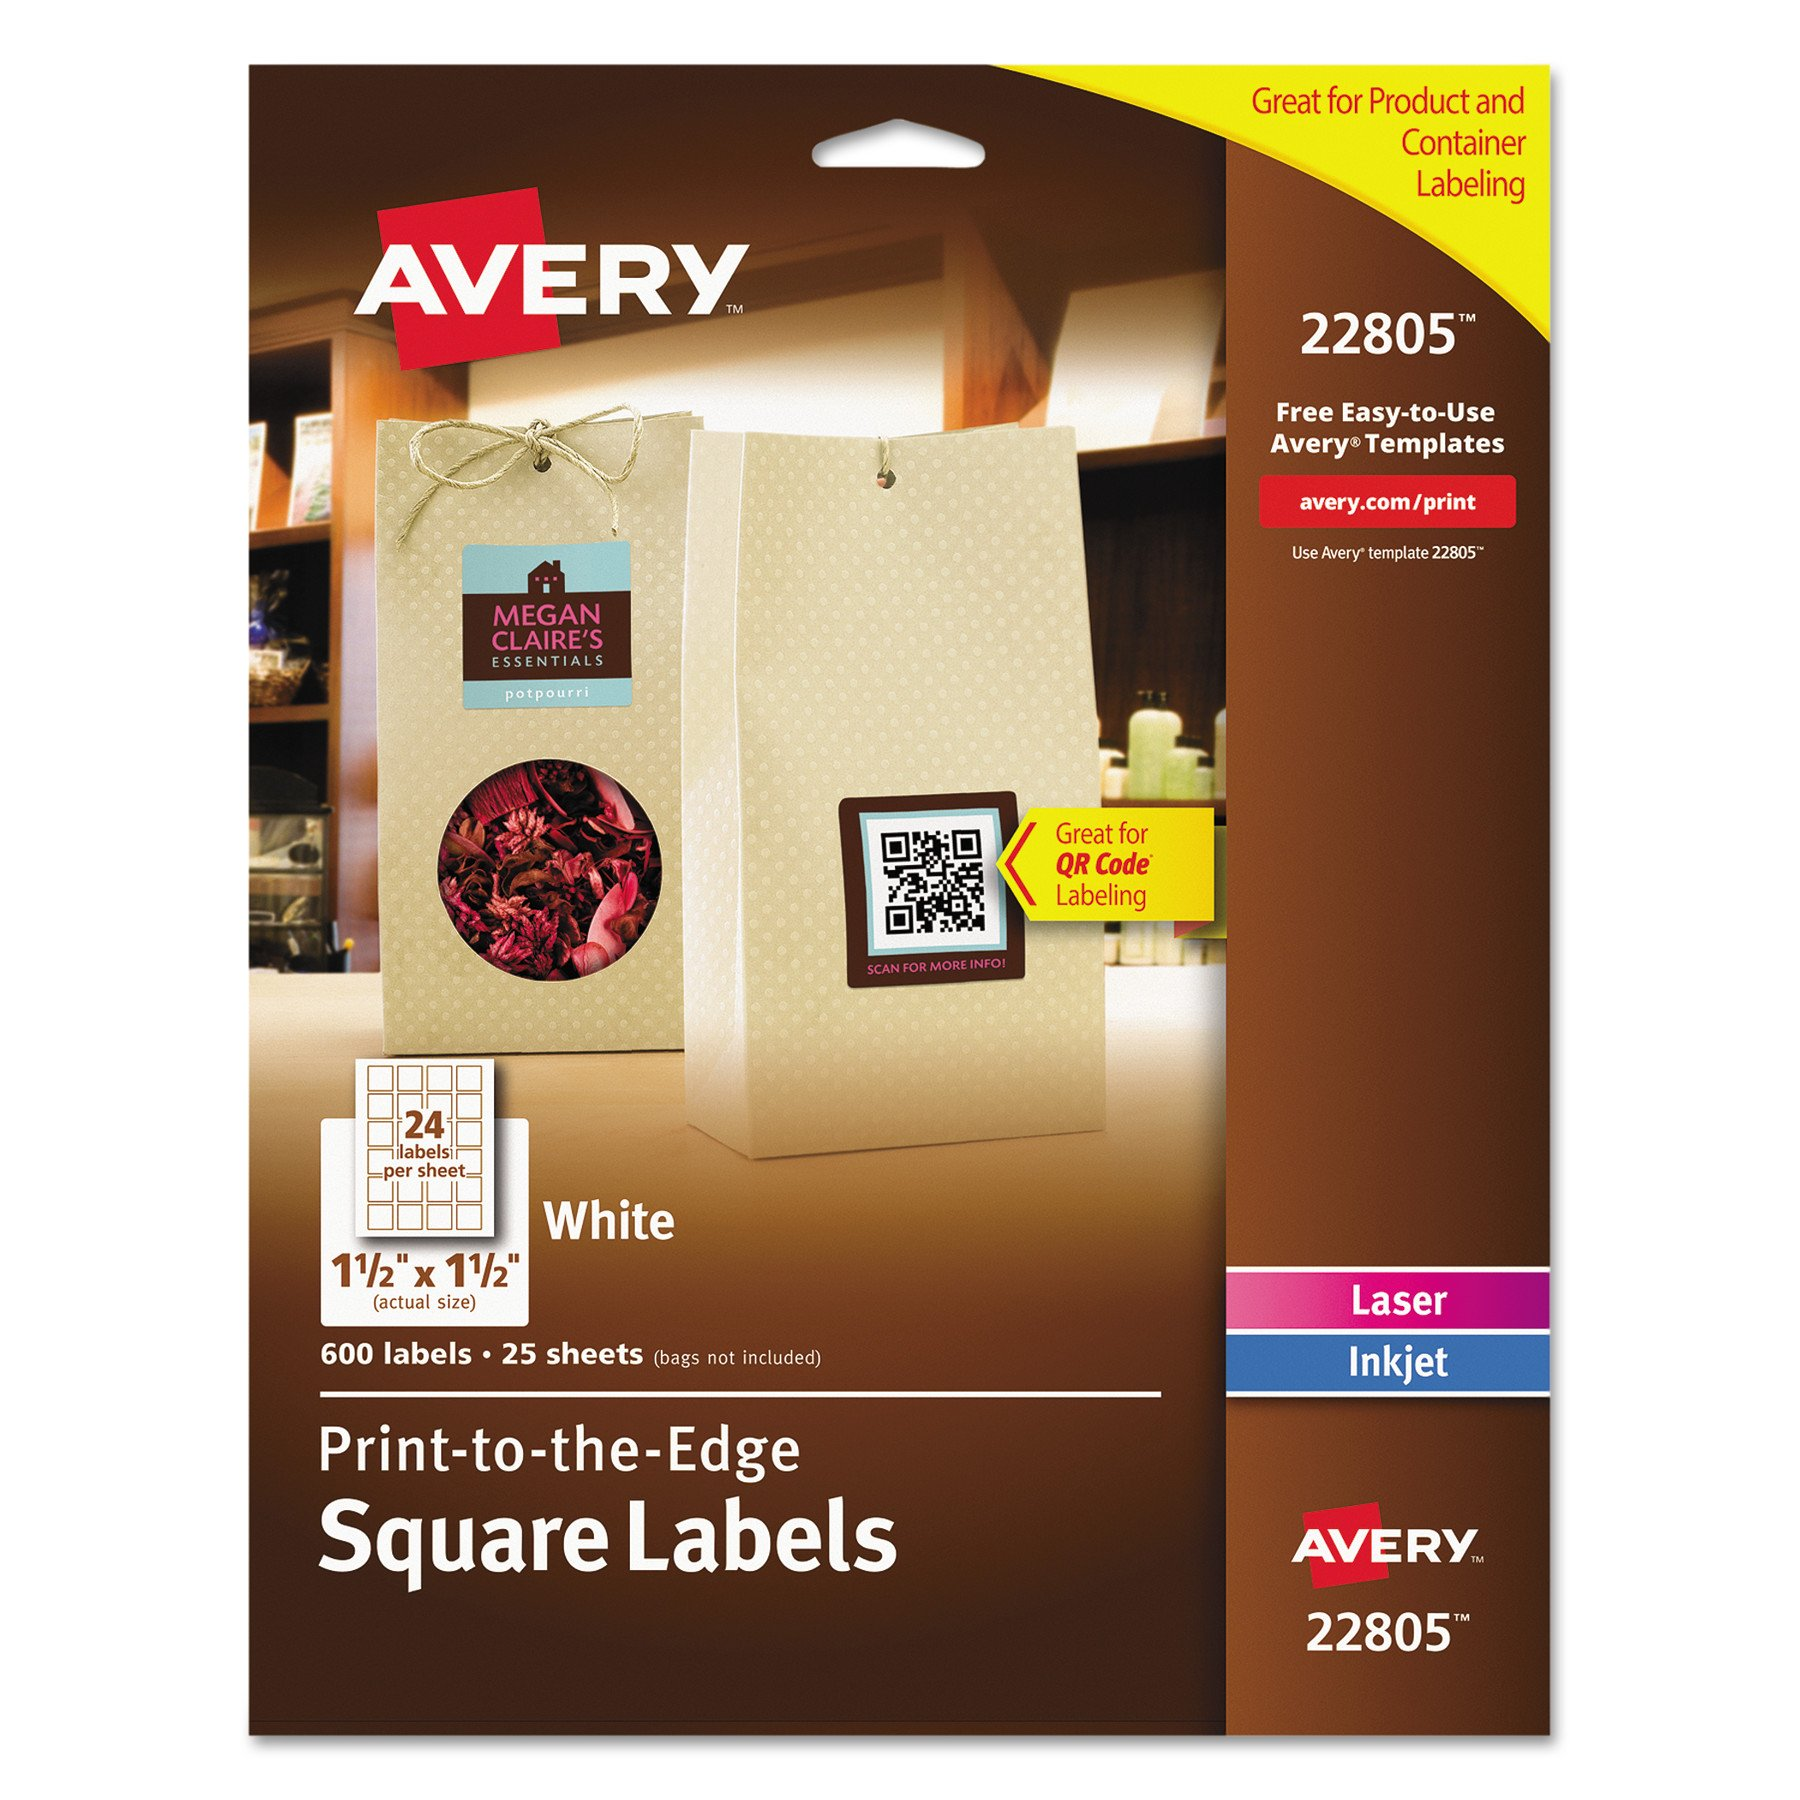 Avery Easy Peel, Print-To-The-Edge, Permanent White Square Labels, True Block, 1.5'' x 1.5'', Pack of 600 (22805)